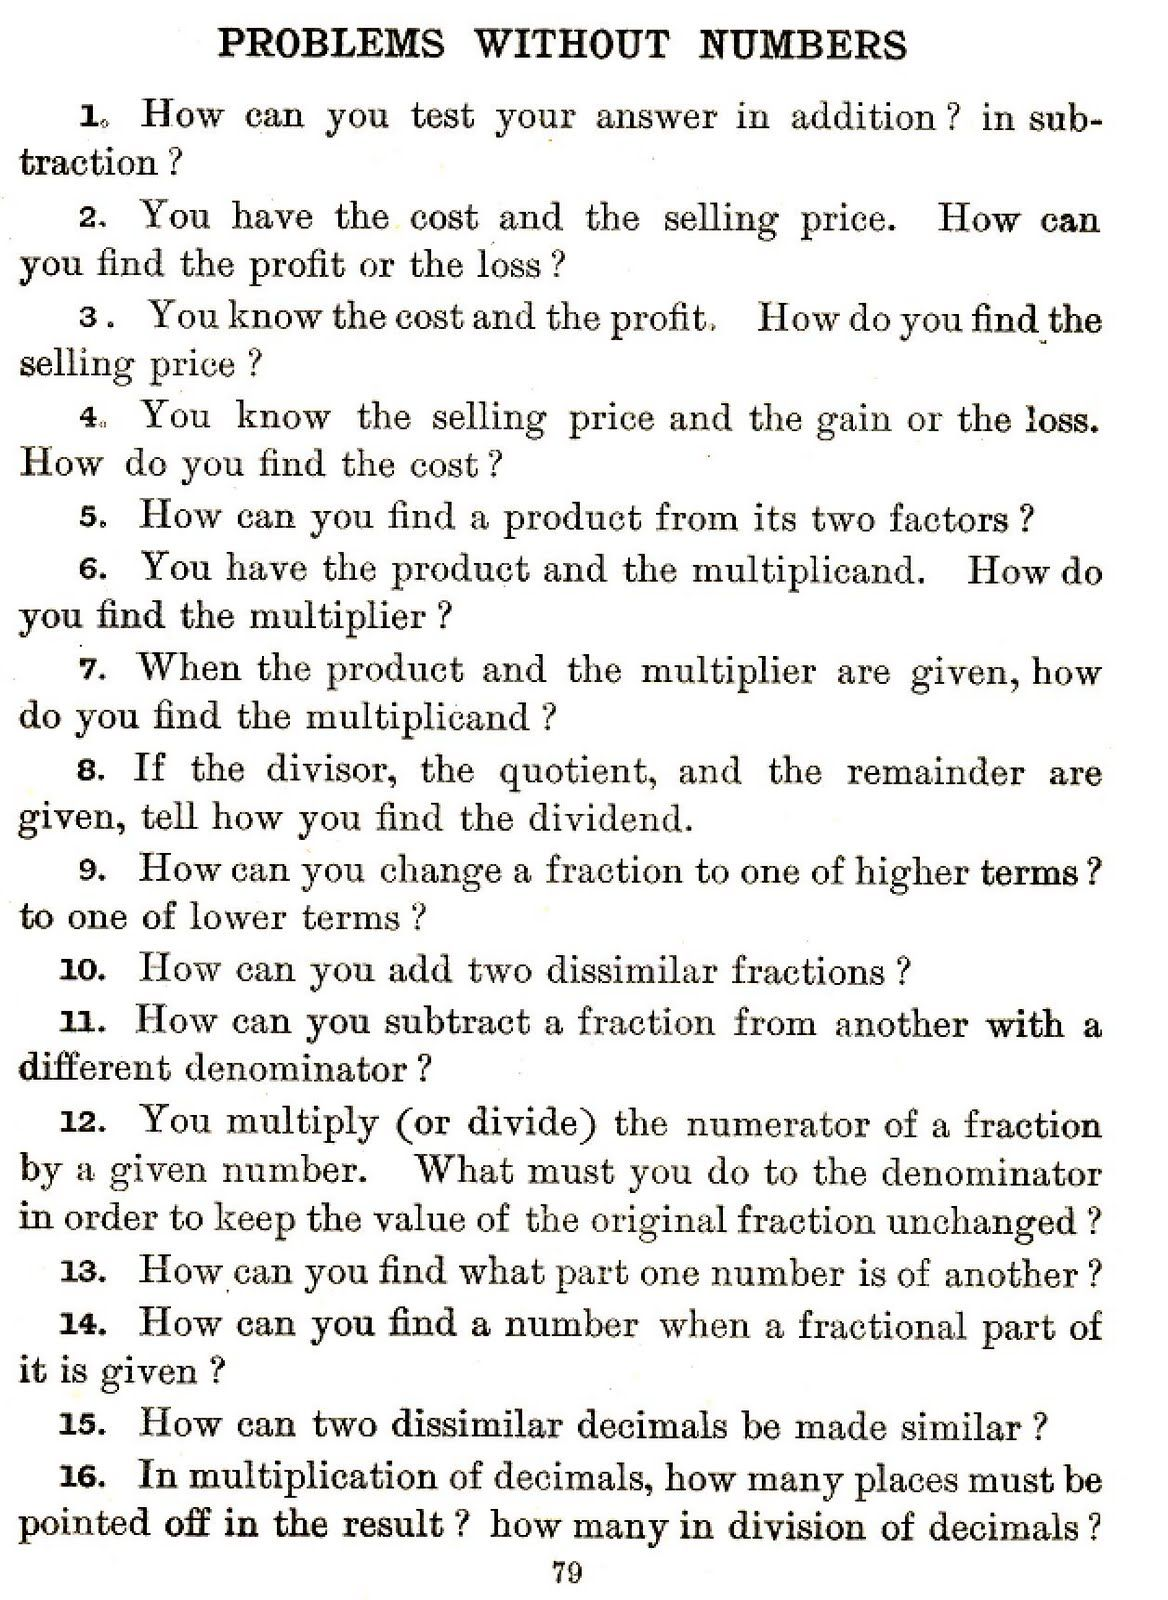 6th Grade Math Riddles Worksheets